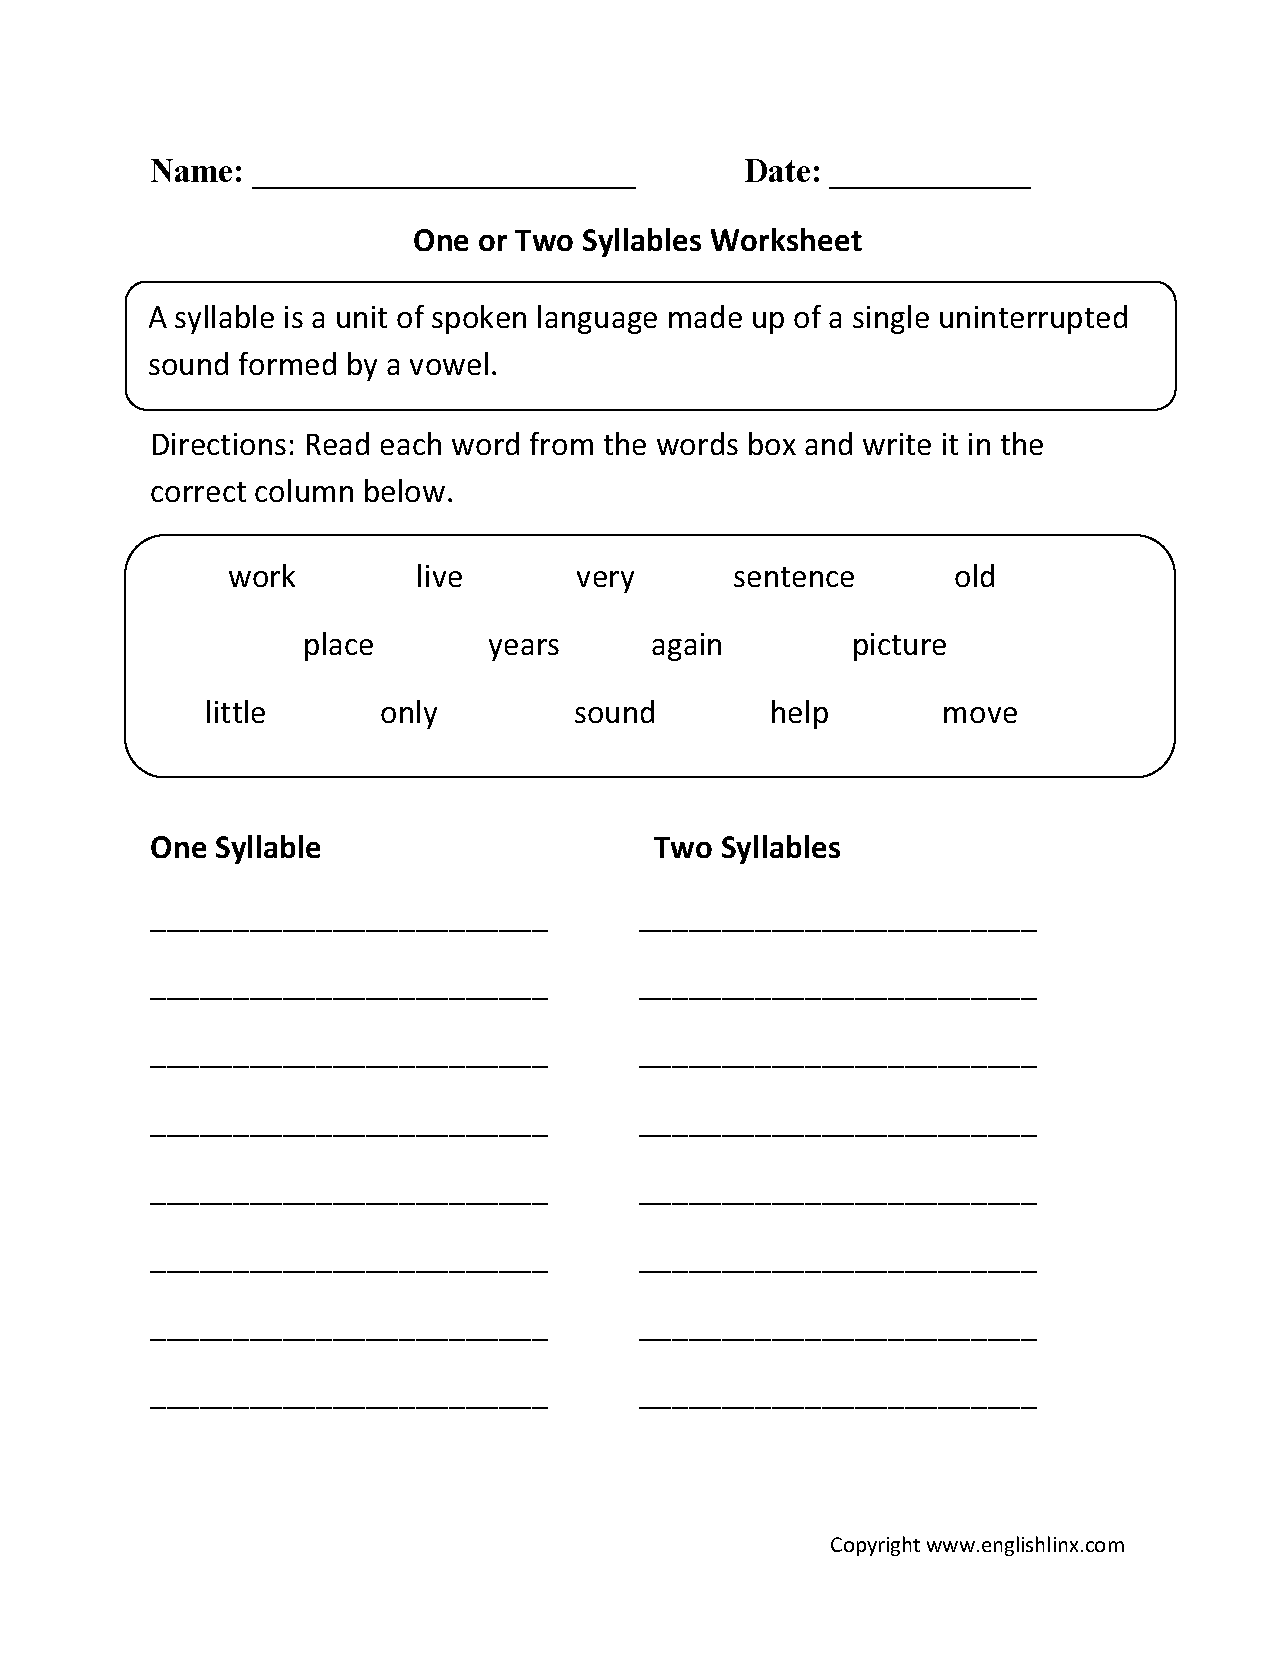 Aldiablosus  Scenic Englishlinxcom  Syllables Worksheets With Inspiring Syllables Worksheets With Attractive Pre Algebra Worksheets Also Systems Of Equations Worksheet In Addition Mitosis Worksheet And Comprehension Worksheets As Well As Esl Worksheets Additionally Parts Of Speech Worksheets From Englishlinxcom With Aldiablosus  Inspiring Englishlinxcom  Syllables Worksheets With Attractive Syllables Worksheets And Scenic Pre Algebra Worksheets Also Systems Of Equations Worksheet In Addition Mitosis Worksheet From Englishlinxcom